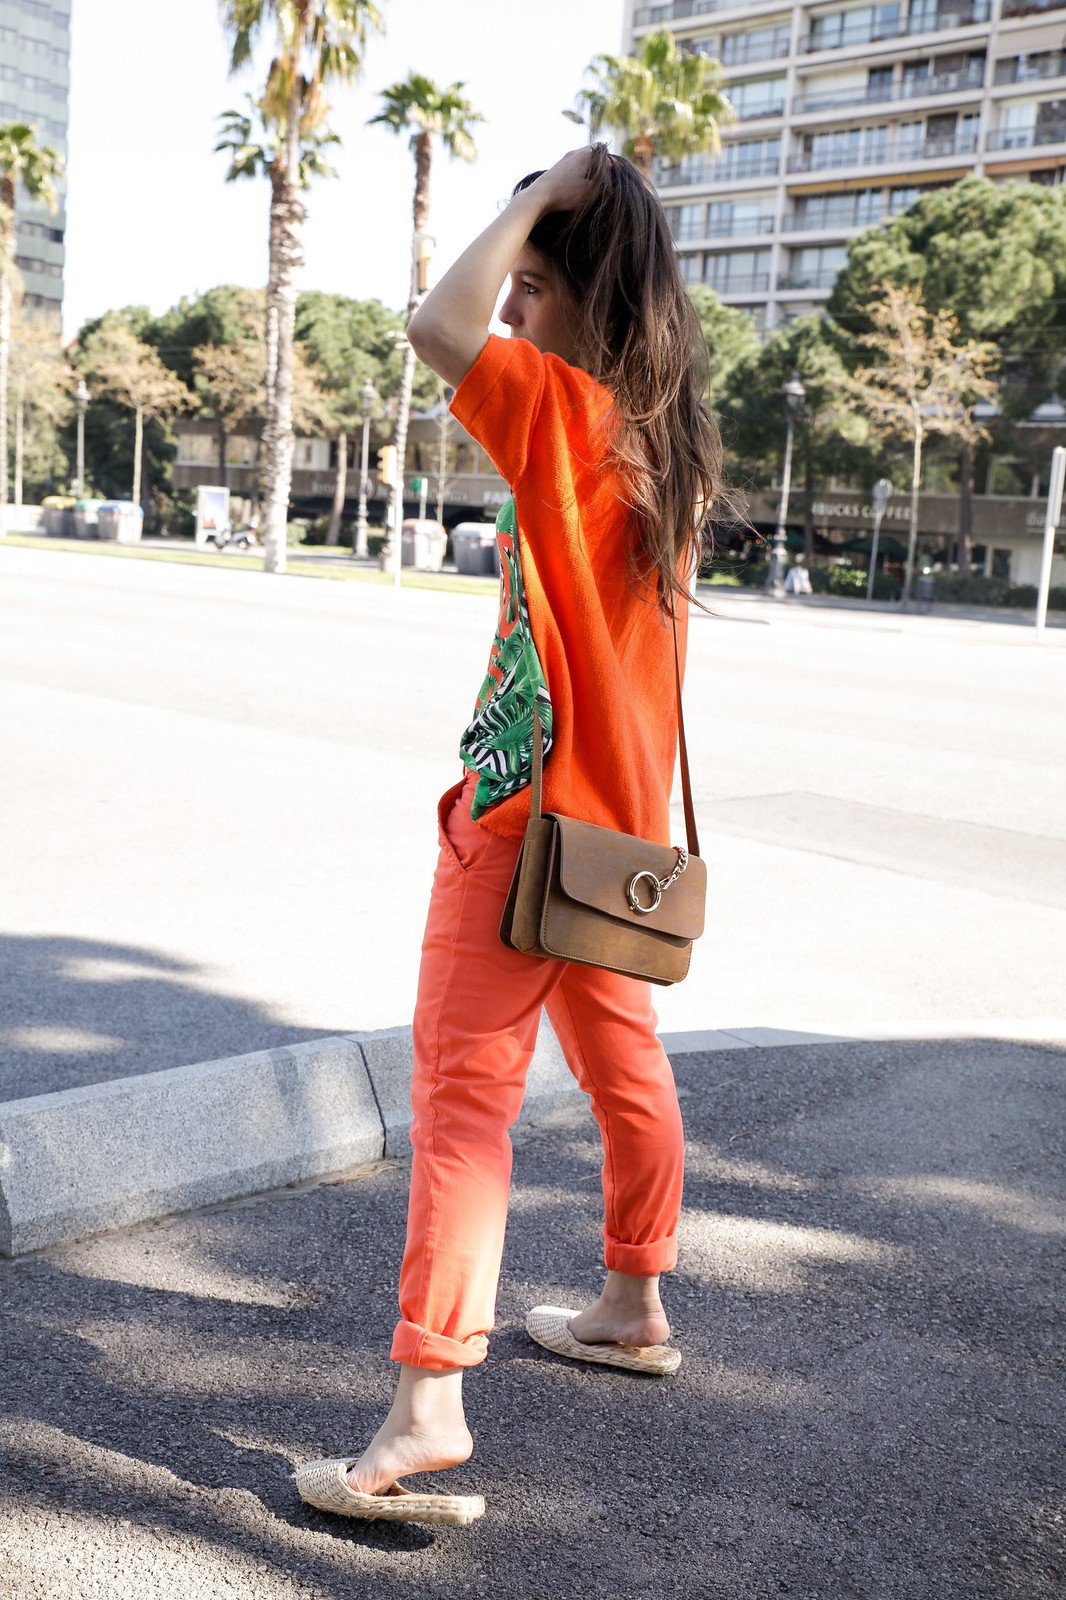 011_tropical_outfit_must_have_orange_skinny_inspo_look_theguestgirl_barcelona